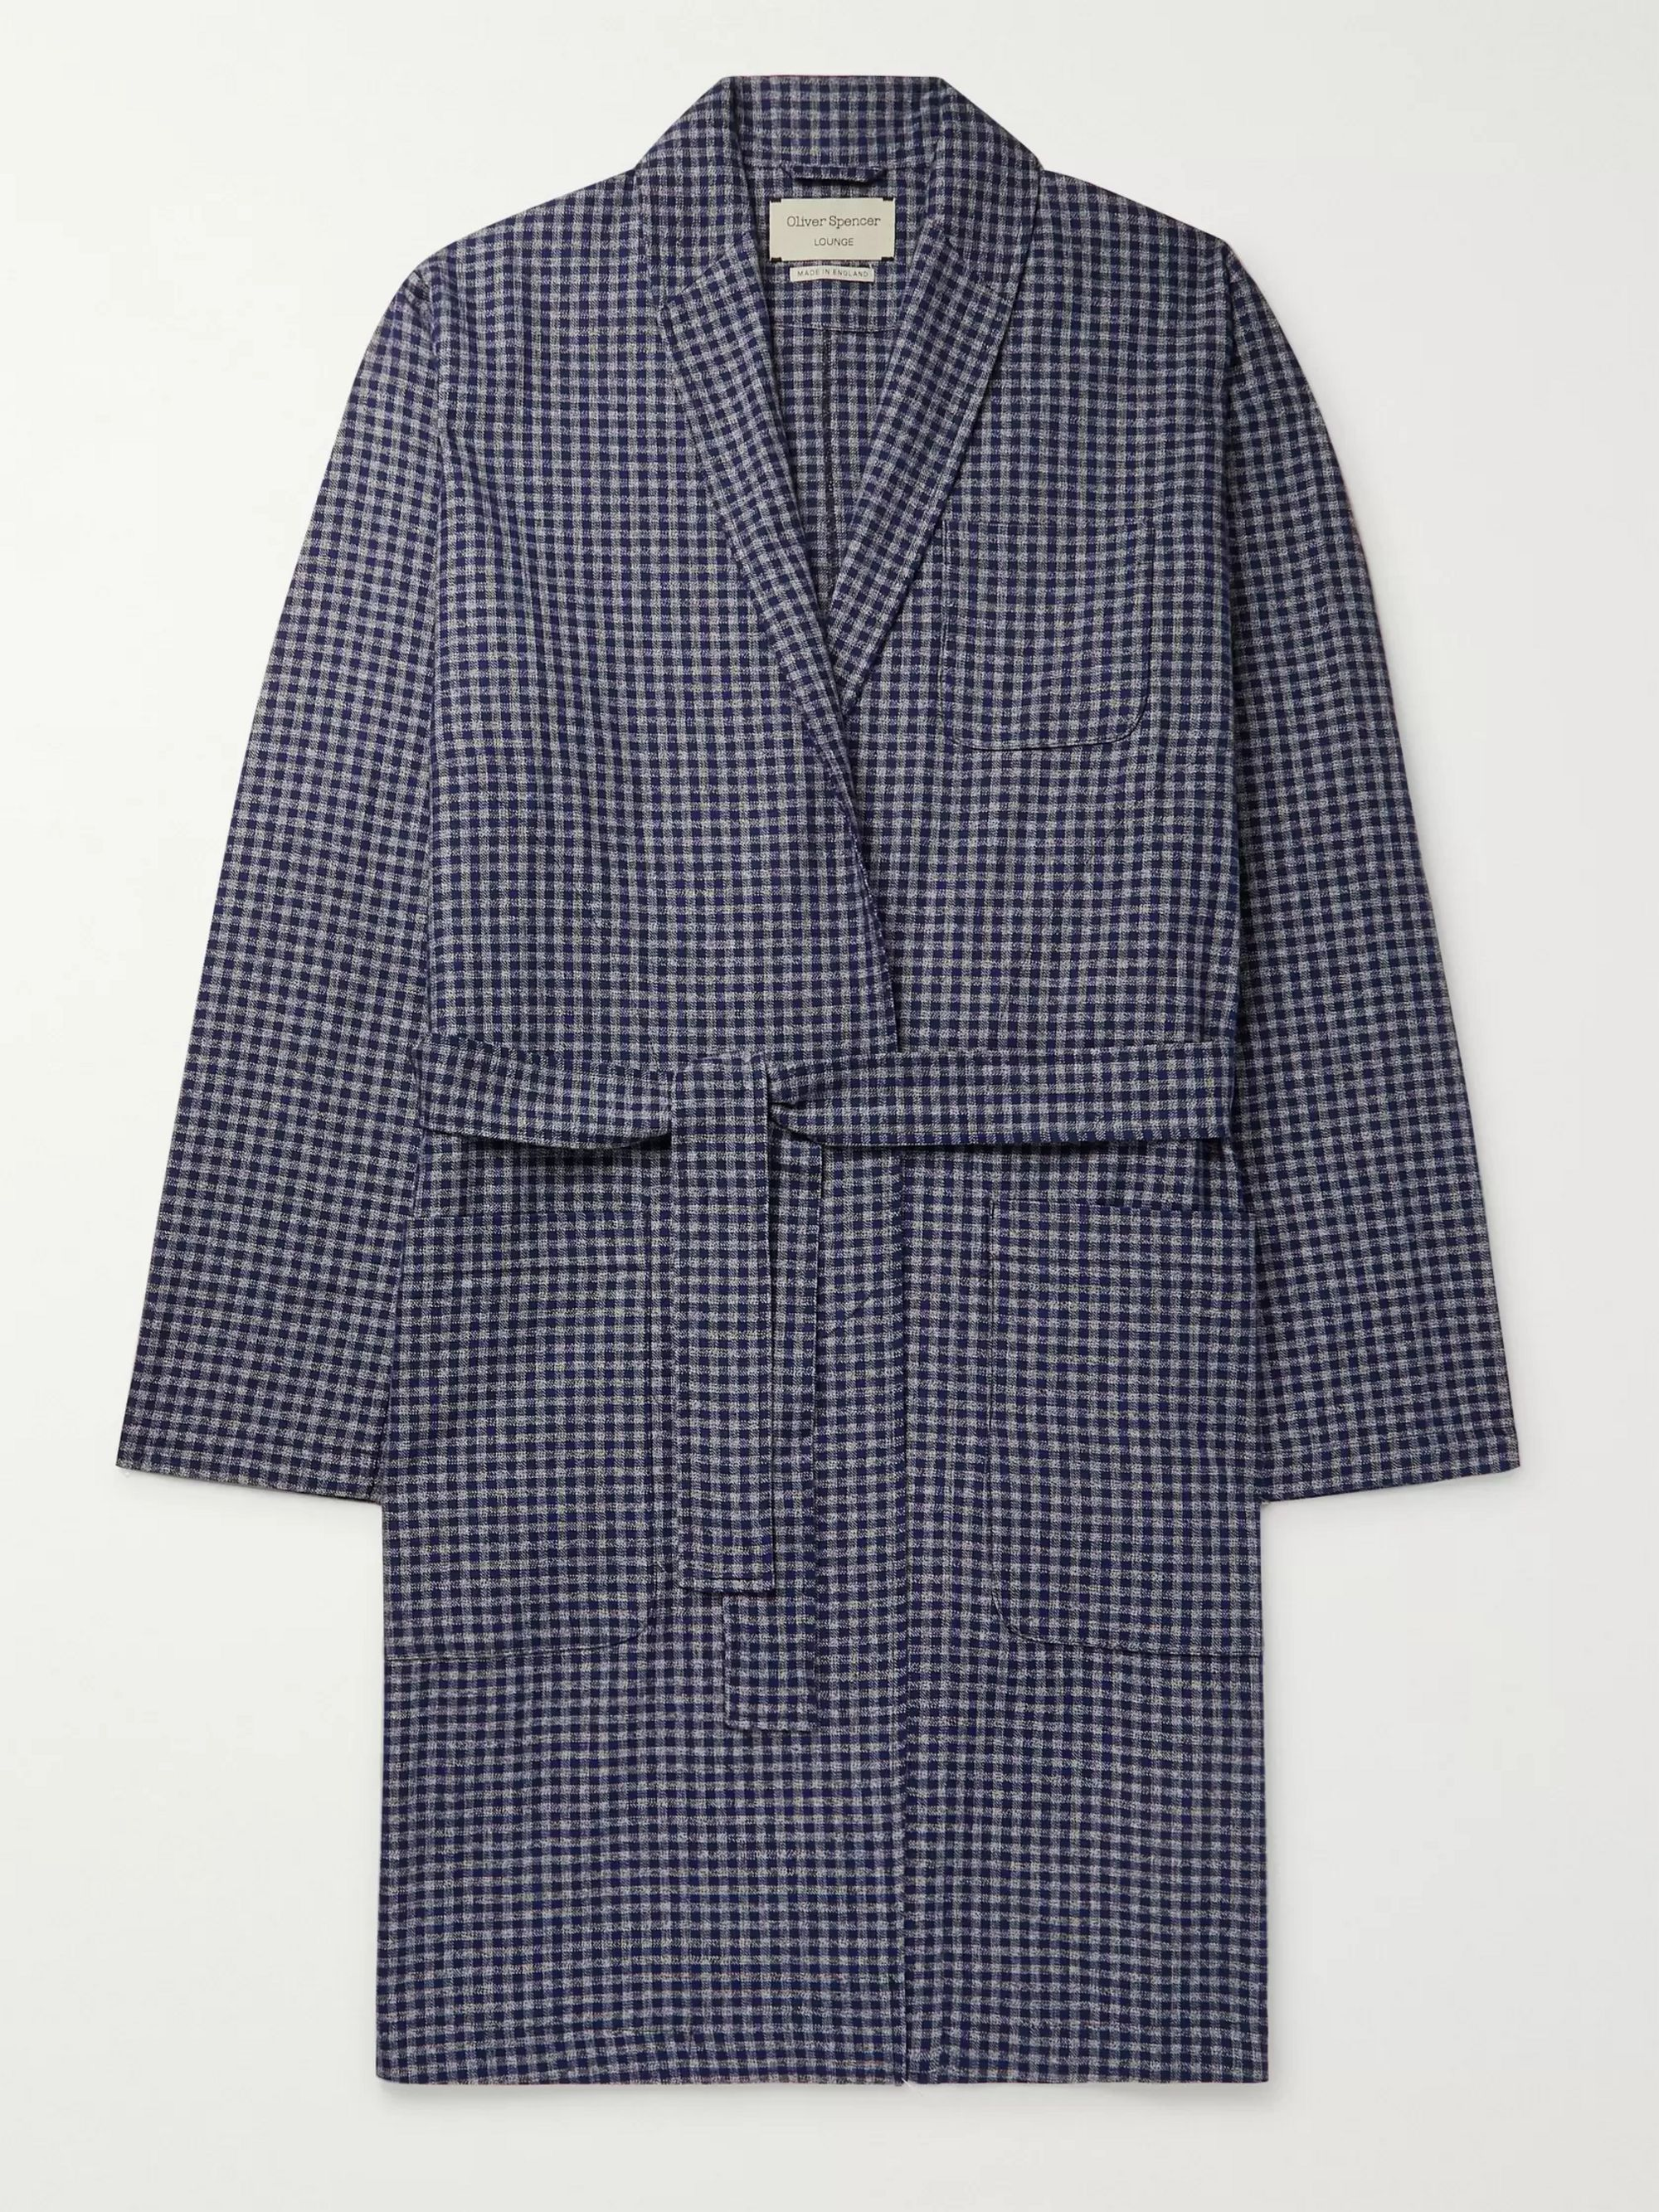 Cannington Gingham Cotton Robe by Oliver Spencer Loungewear